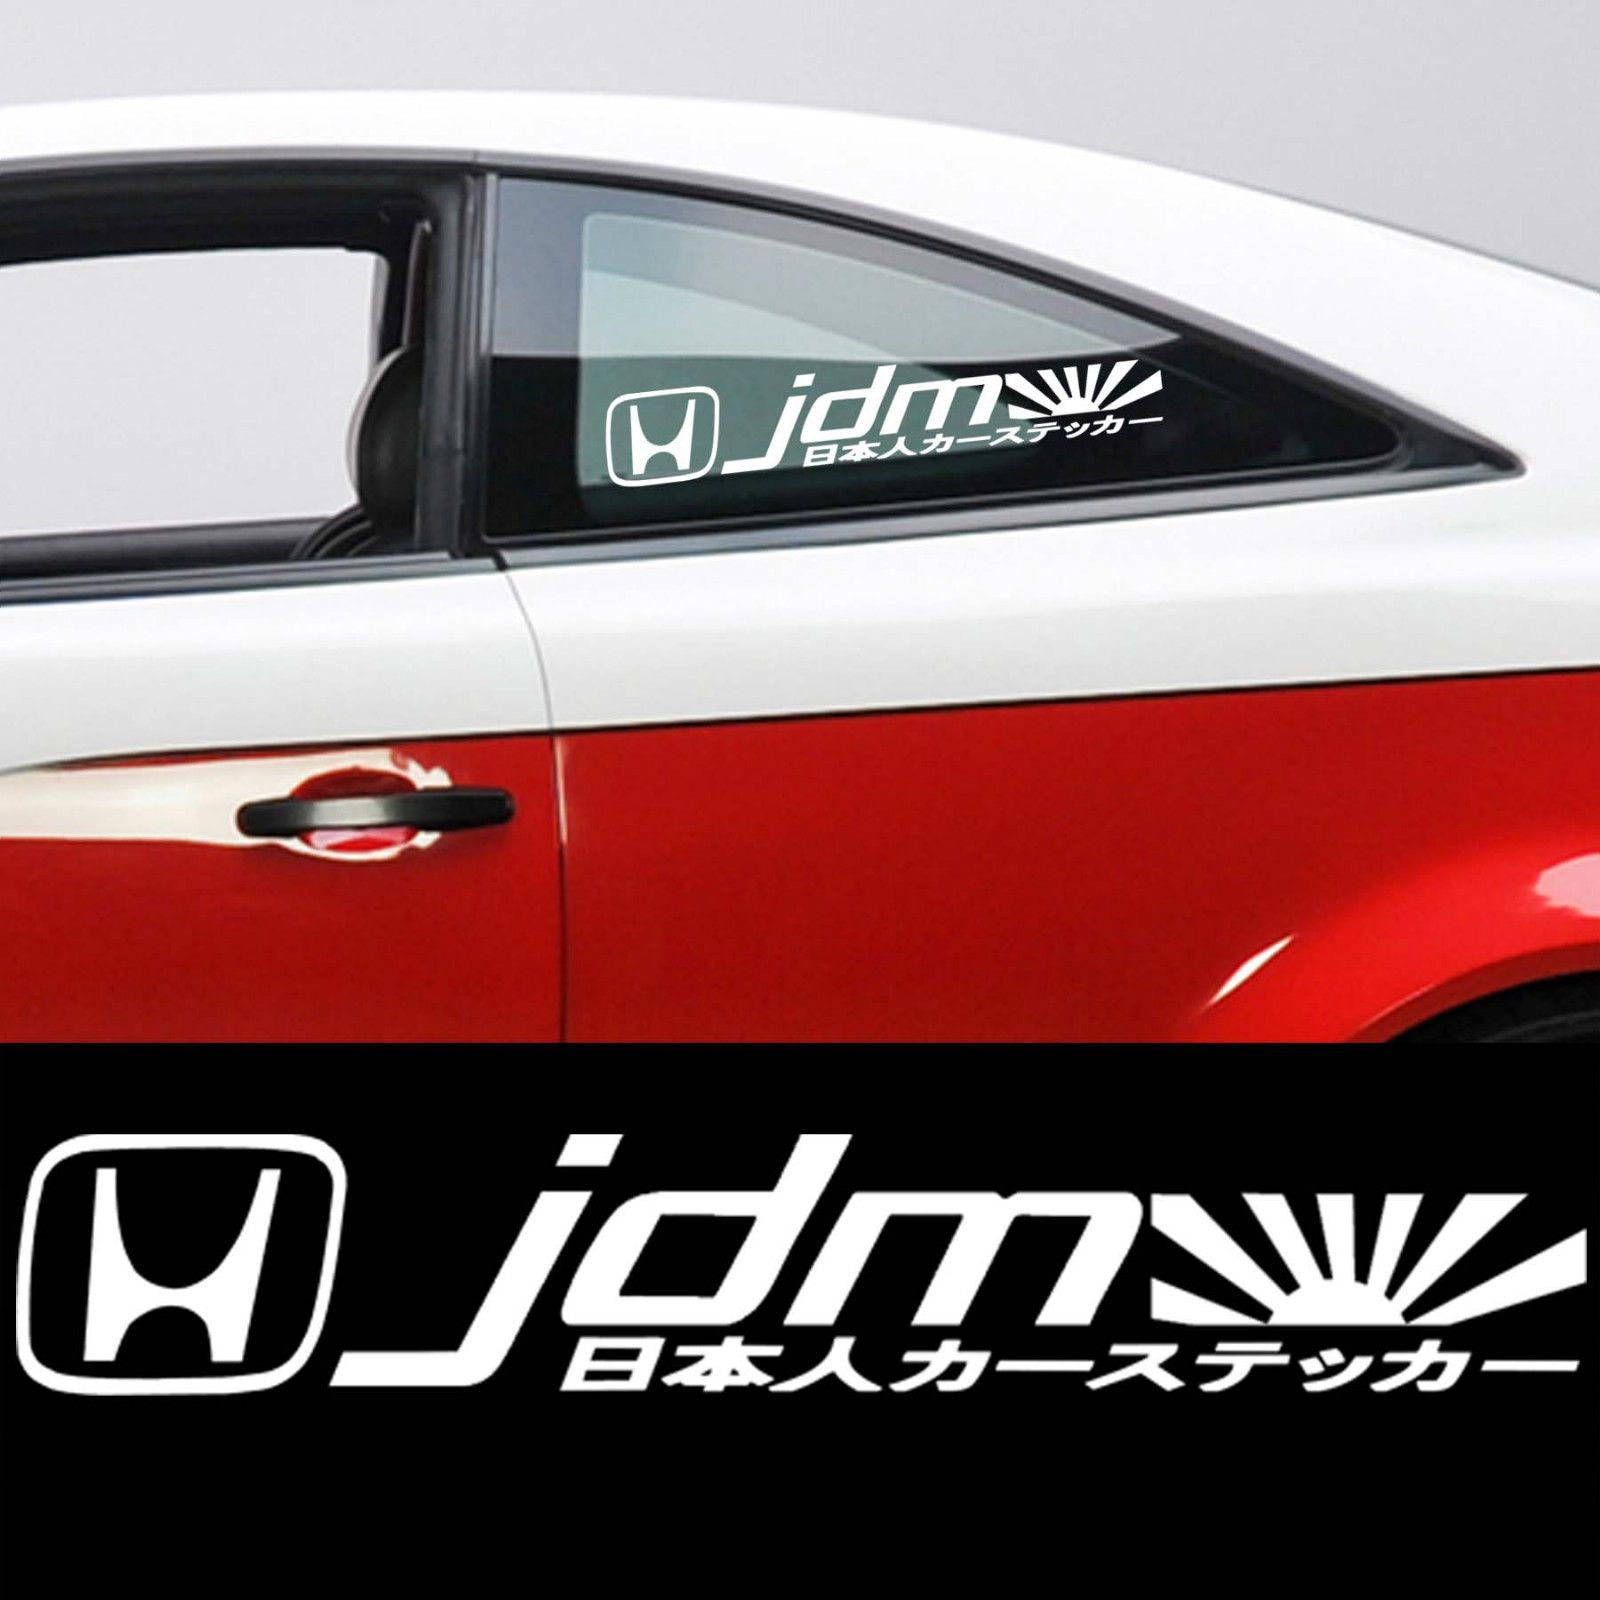 Car mirror sticker design - Explore Honda Racing Decals Racing Car And More